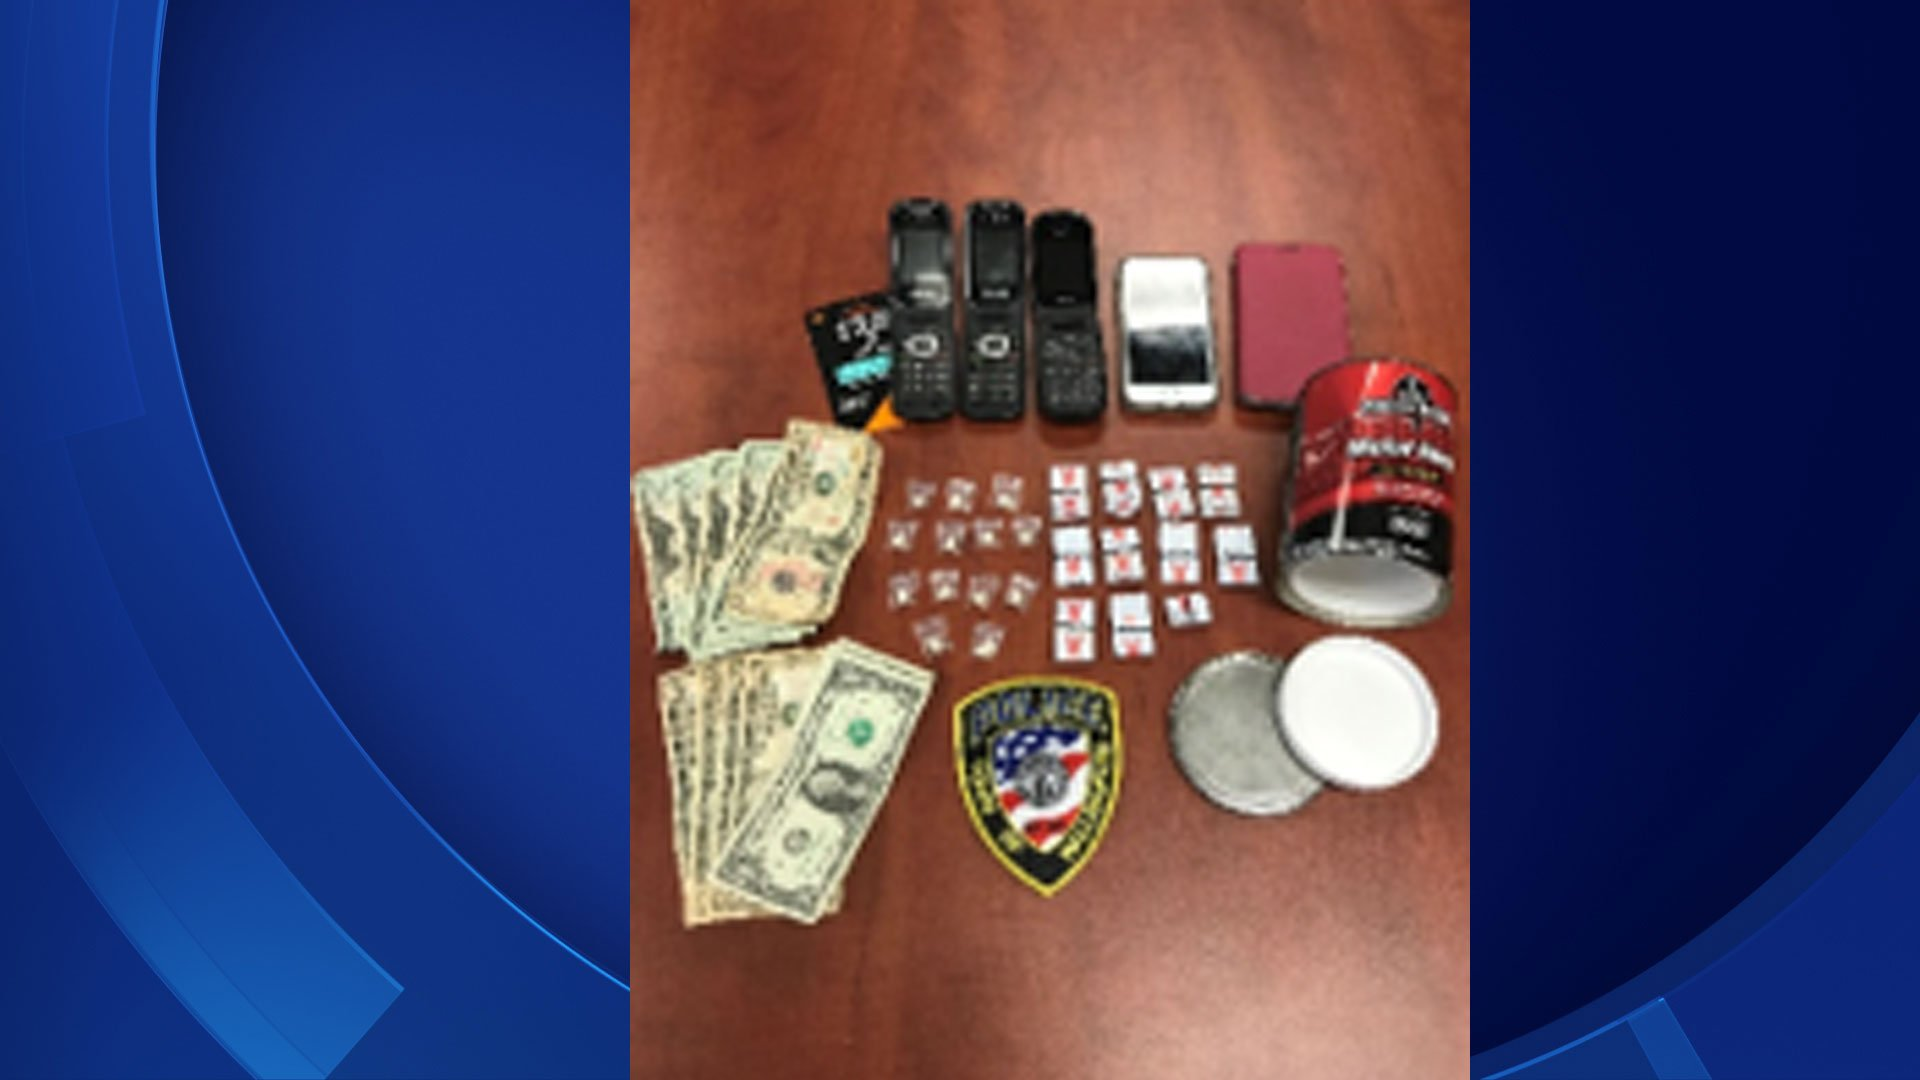 The following items were seized during an arrest on Thursday. (Wallingford Police Department)